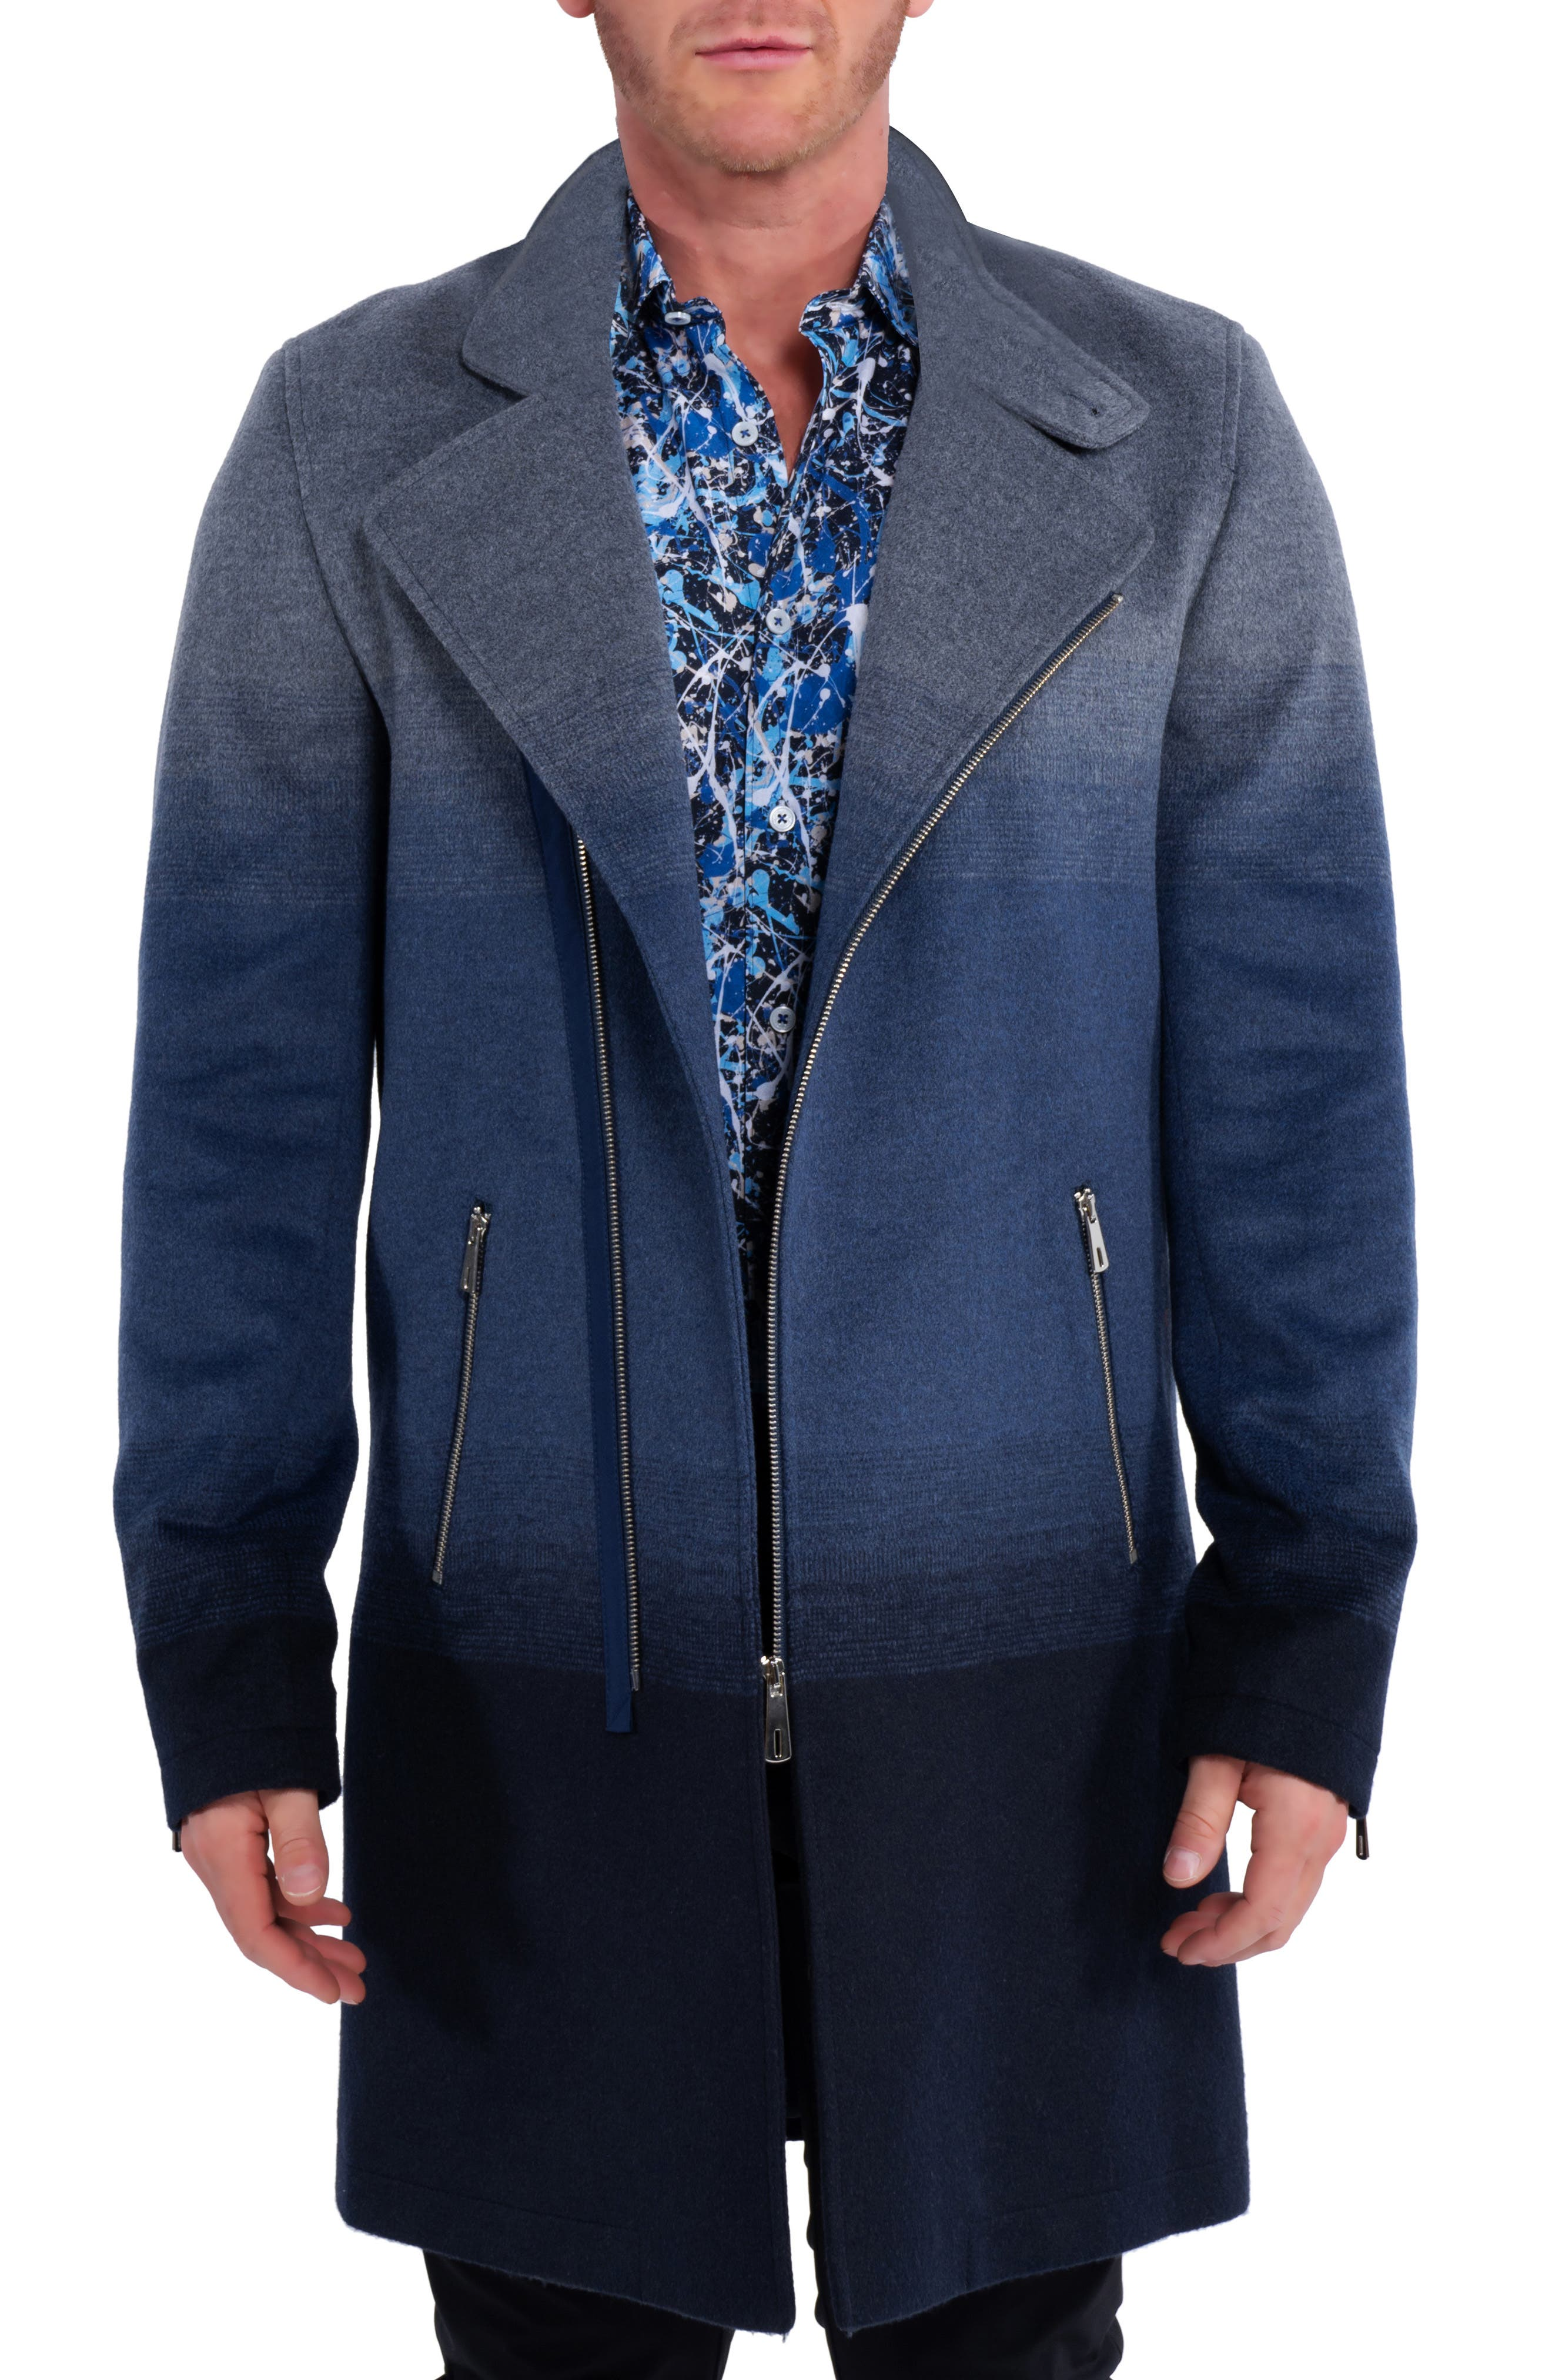 Zipombre Wool & Cashmere Overcoat With Faux Fur Trim